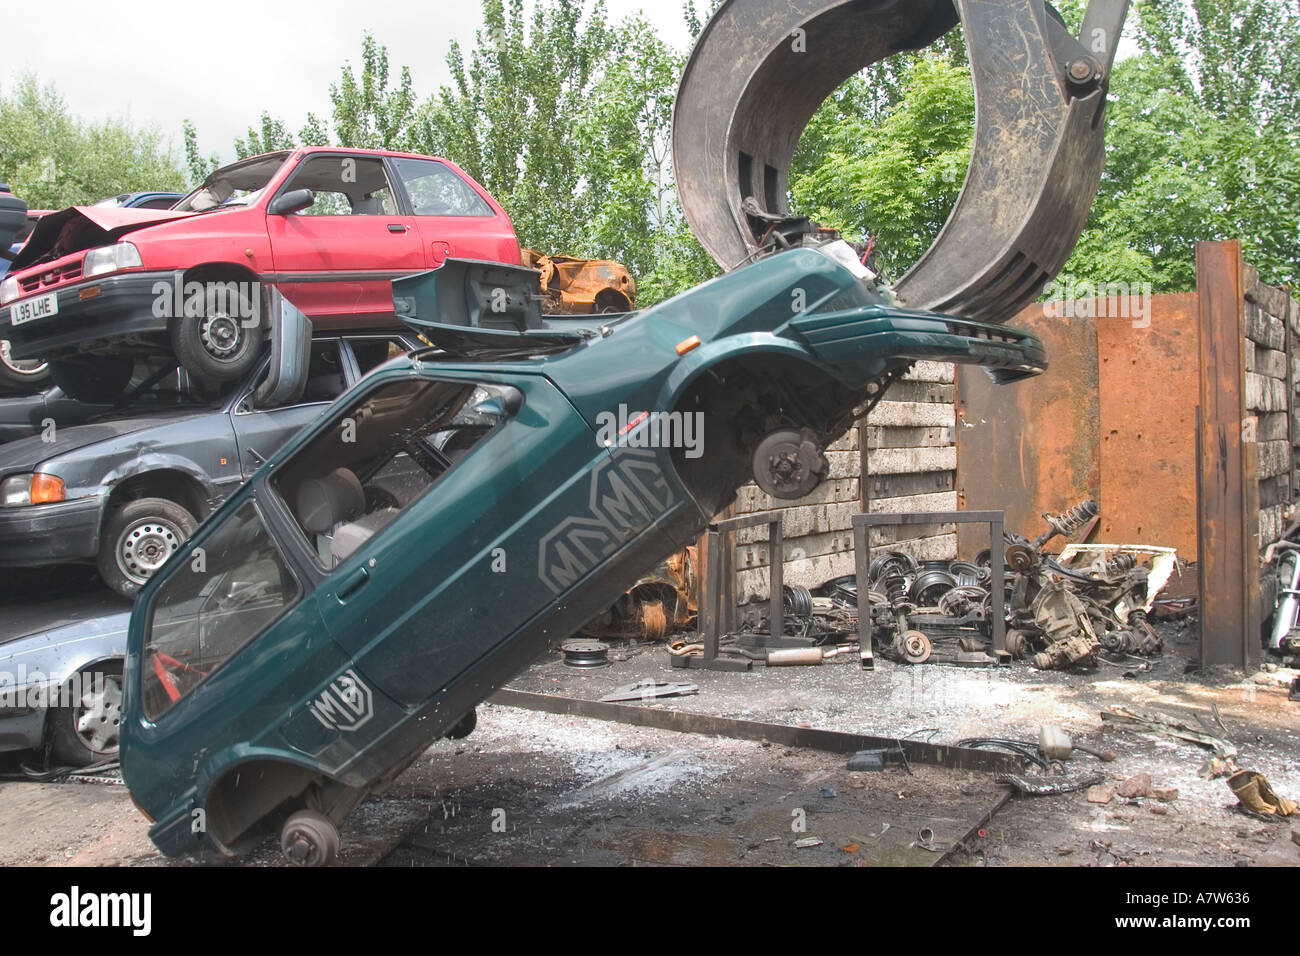 Car being dismantled for recycling - Stock Image